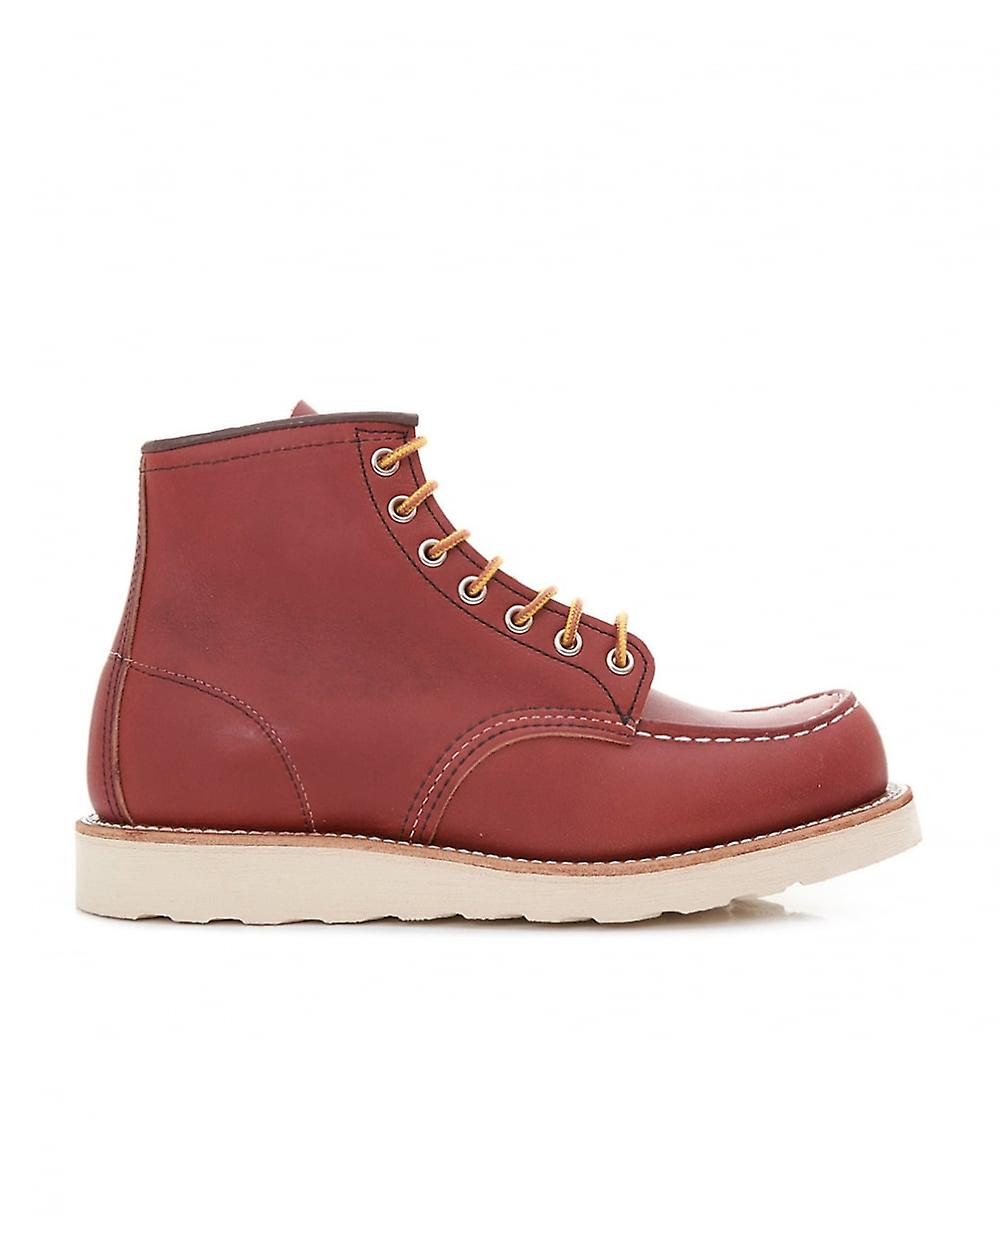 Red Wing Shoes 6 Inch Classic Moc Toe Boots